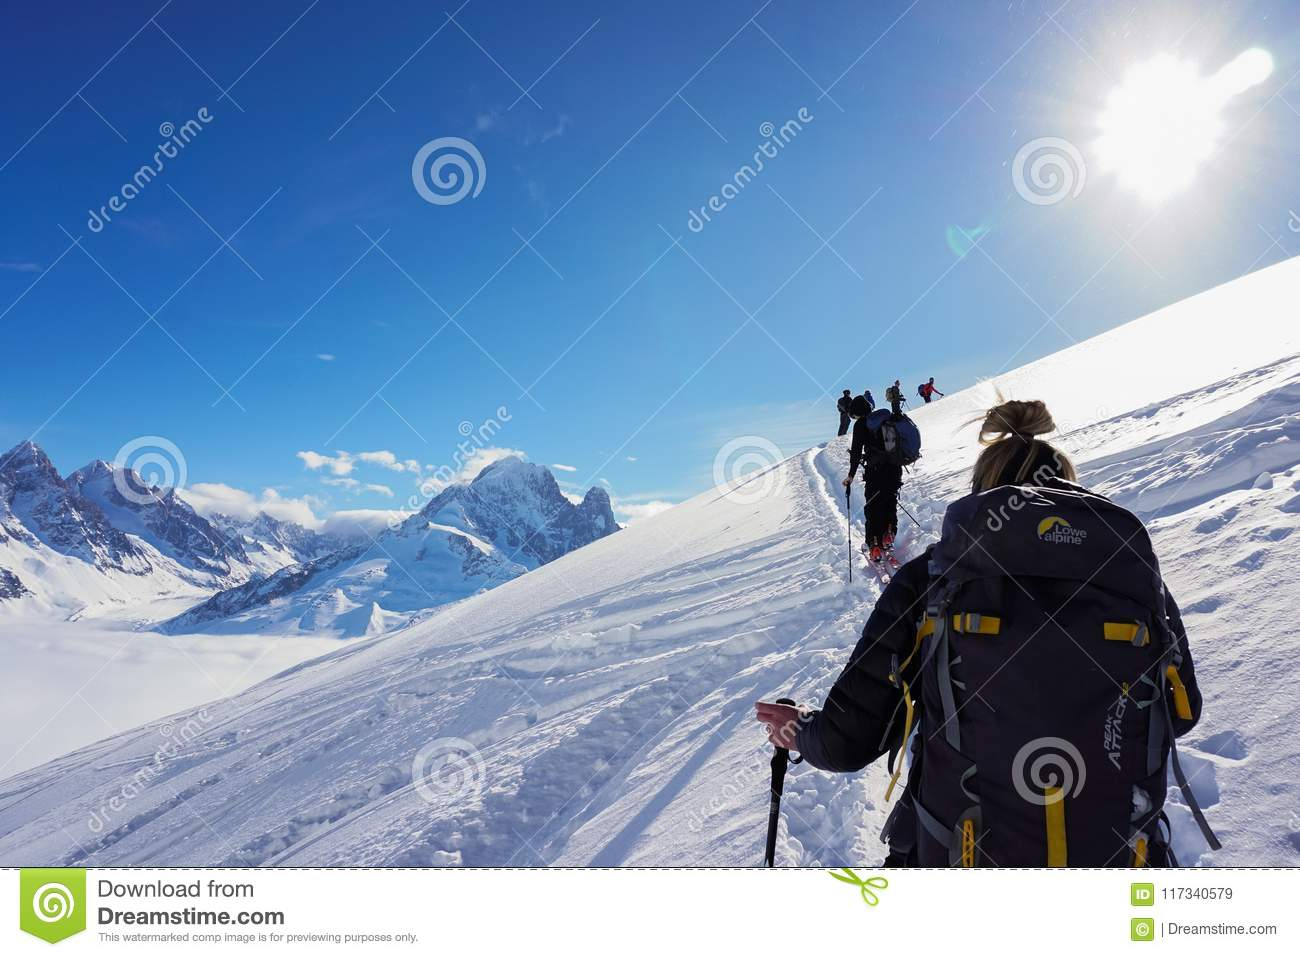 Mountain View a Chamonix-Mont-Blanc mentre Ski Touring